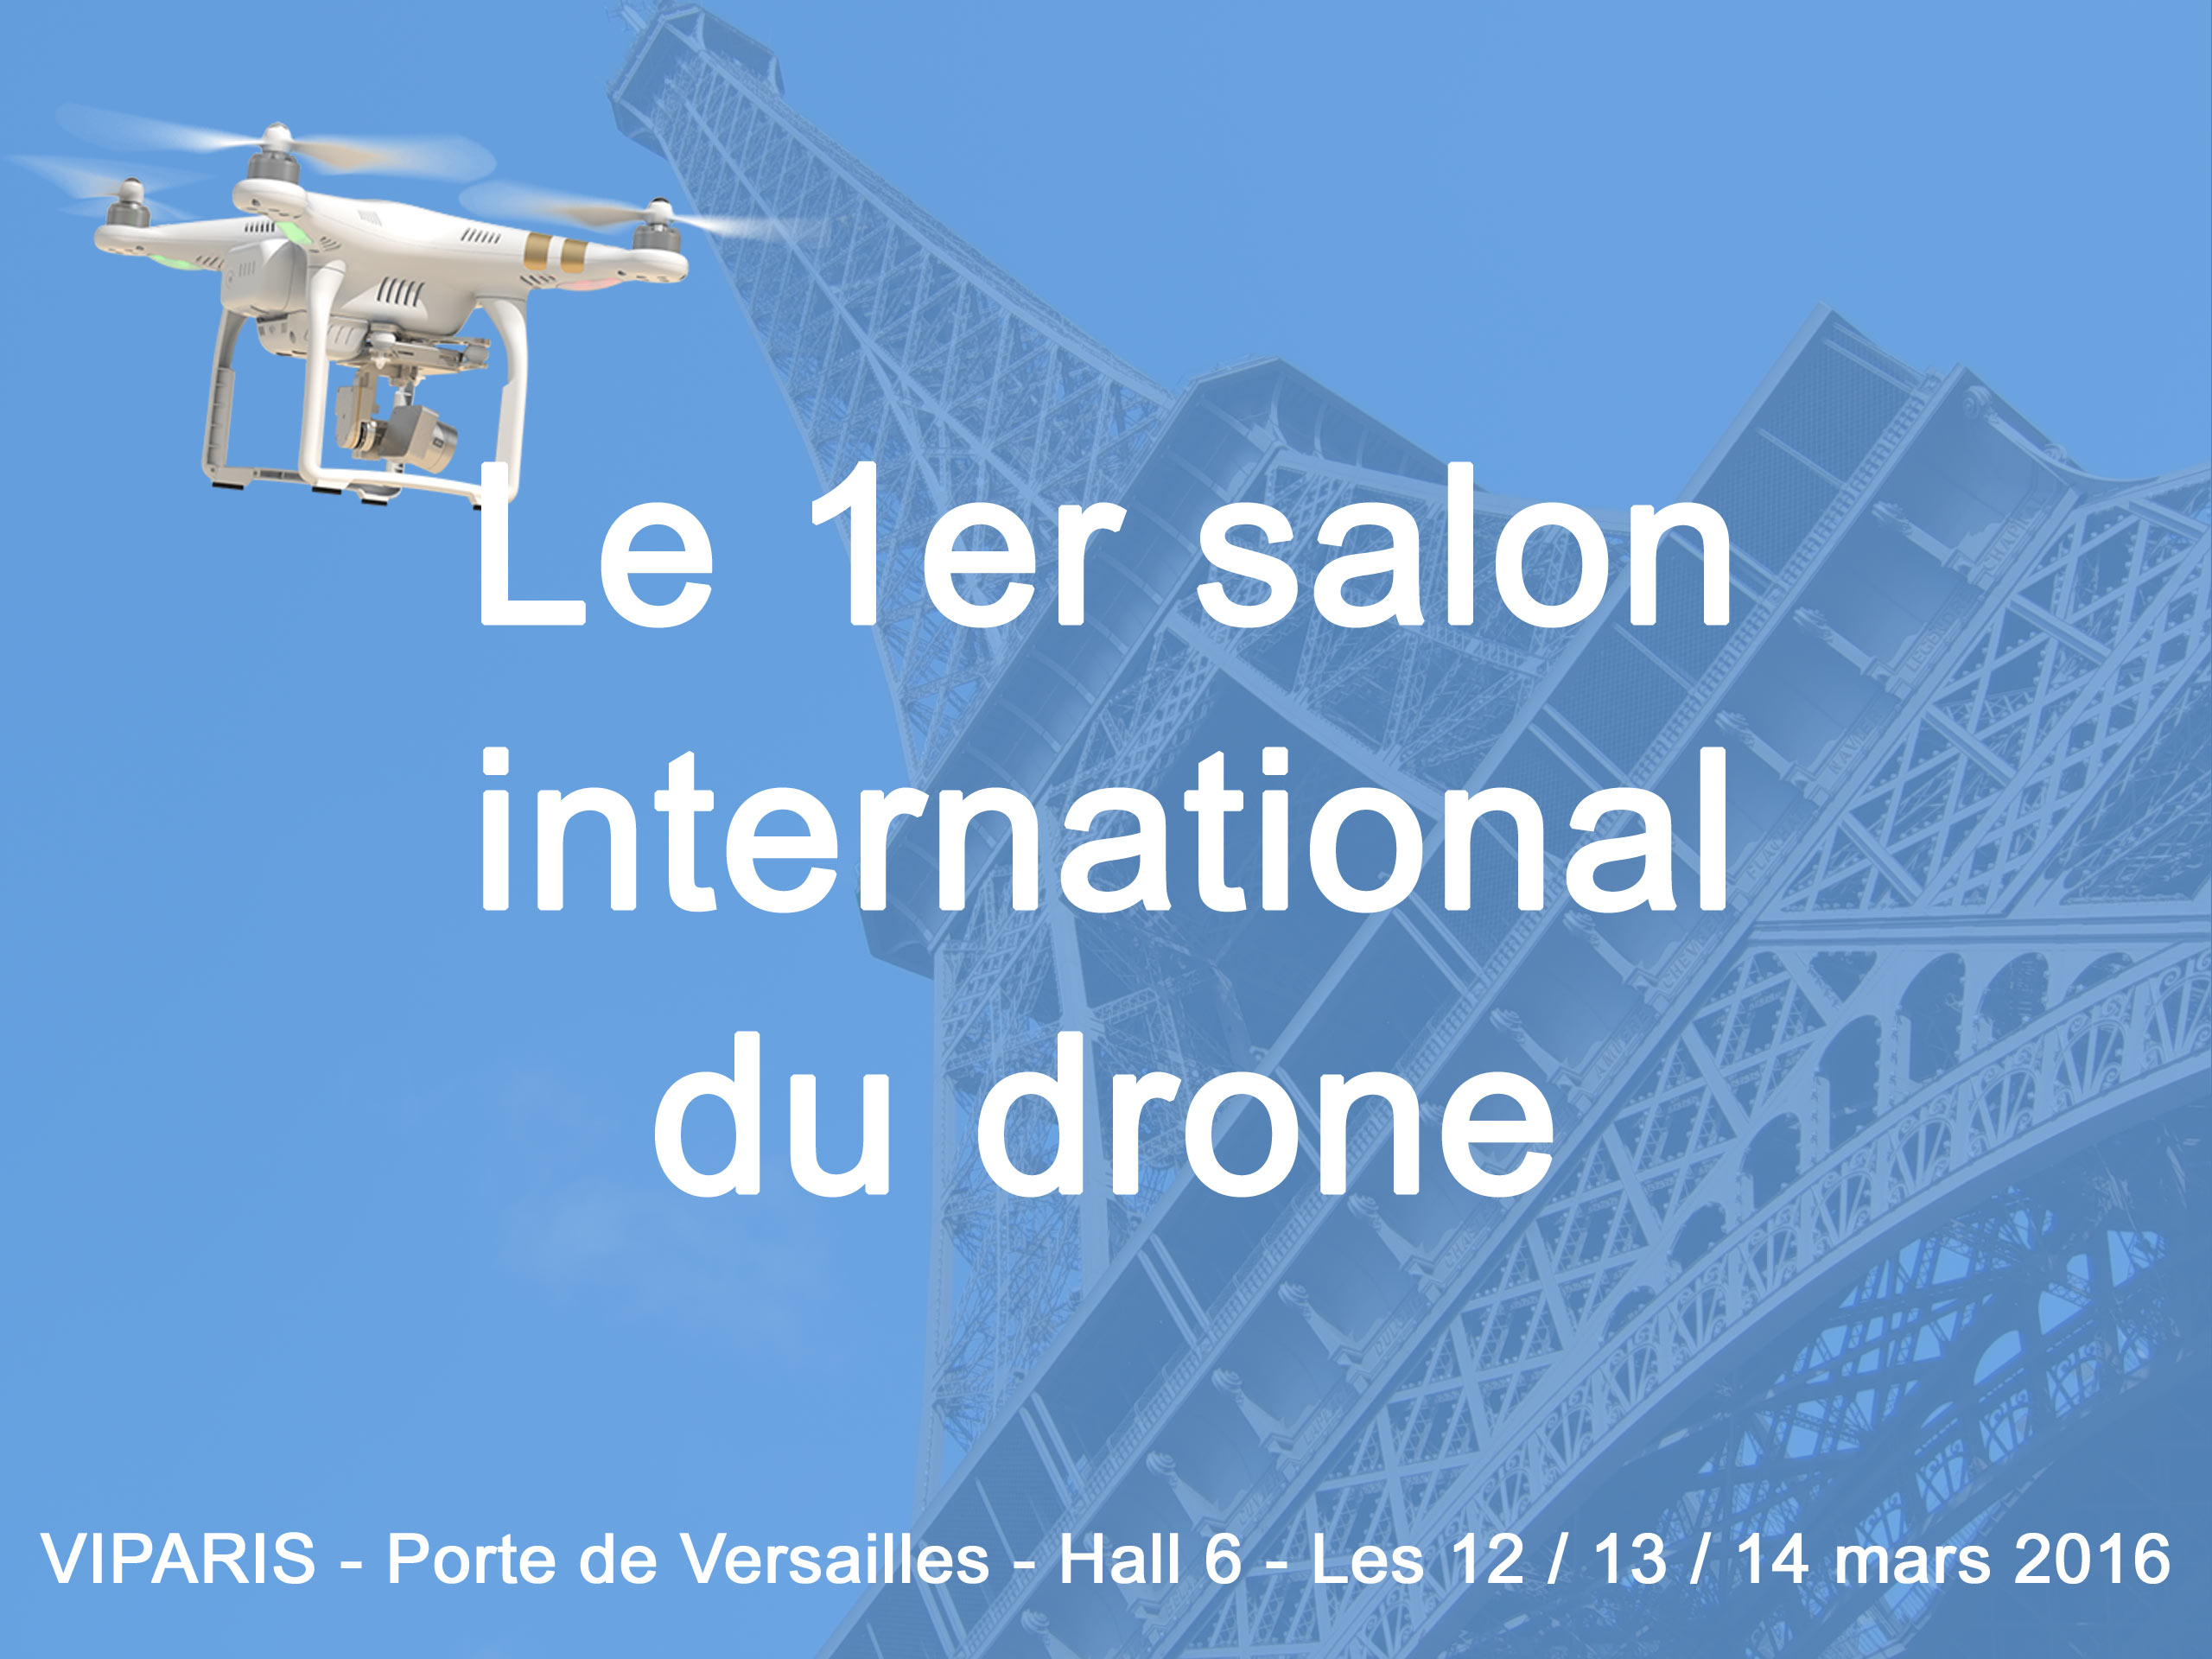 Le 1er Salon International du drone